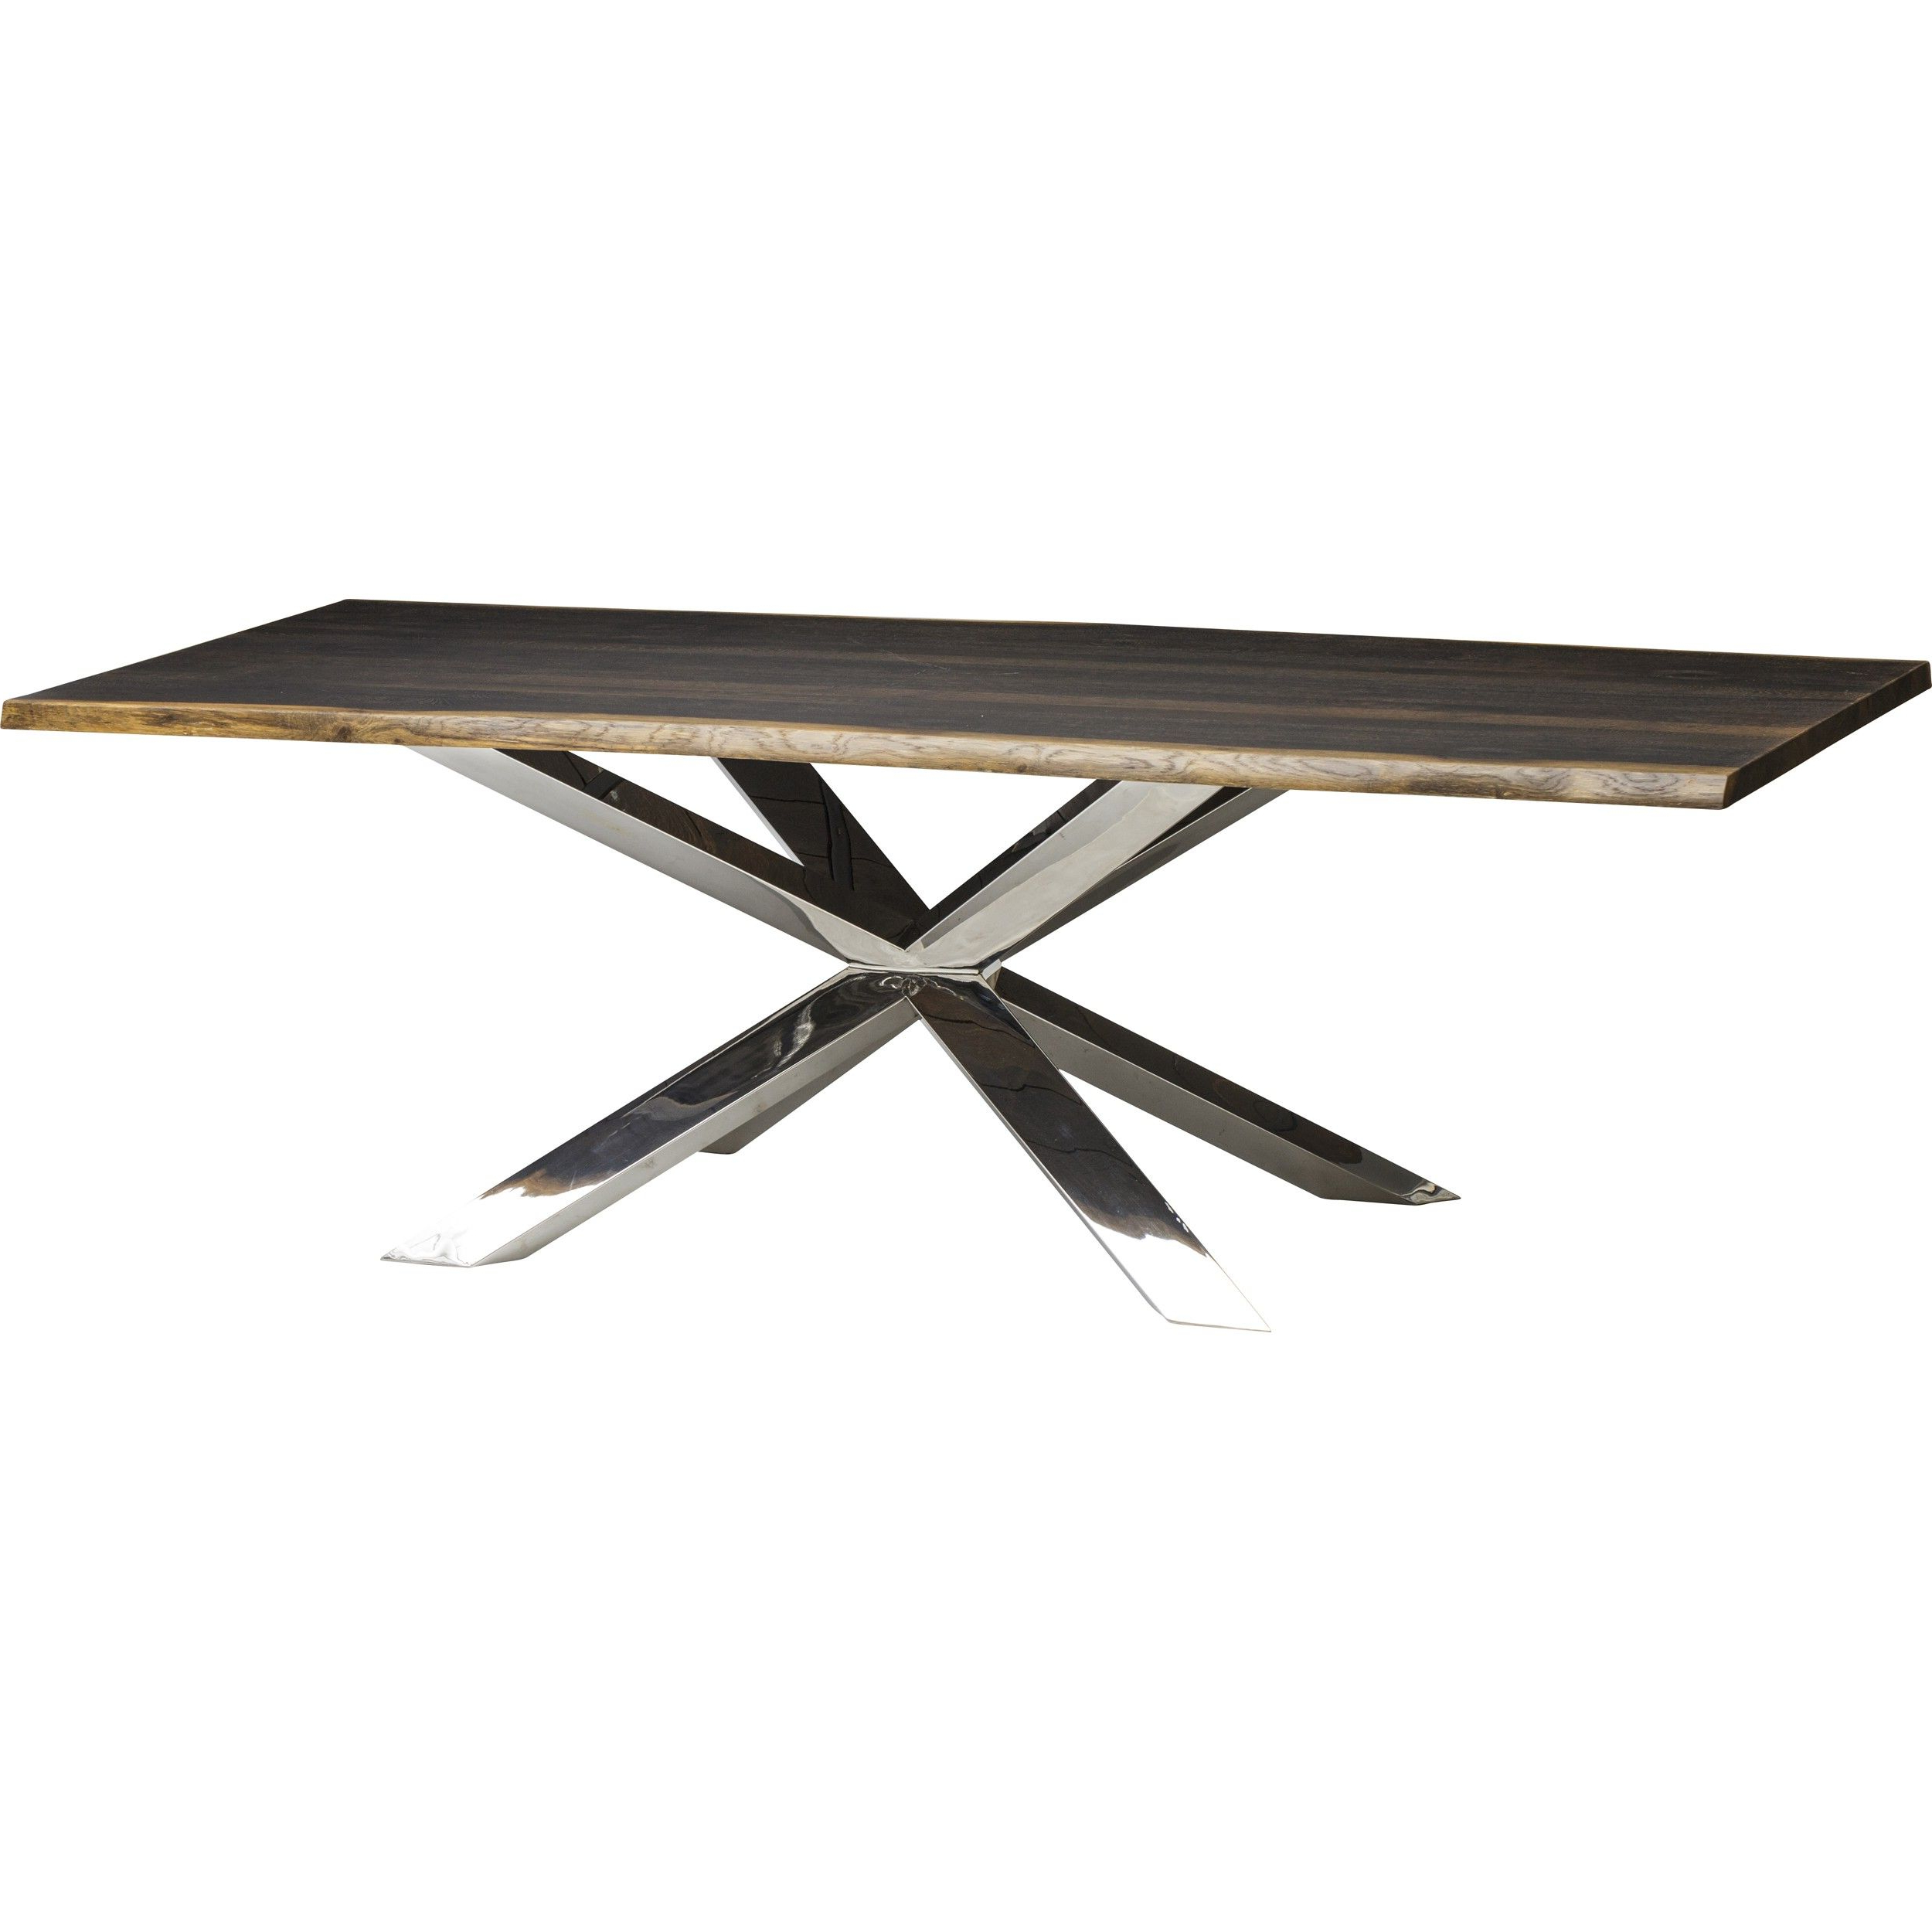 Favorite Dining Tables In Seared Oak In Couture Dining Table, Seared Oak/polished Stainless Base (Gallery 5 of 30)